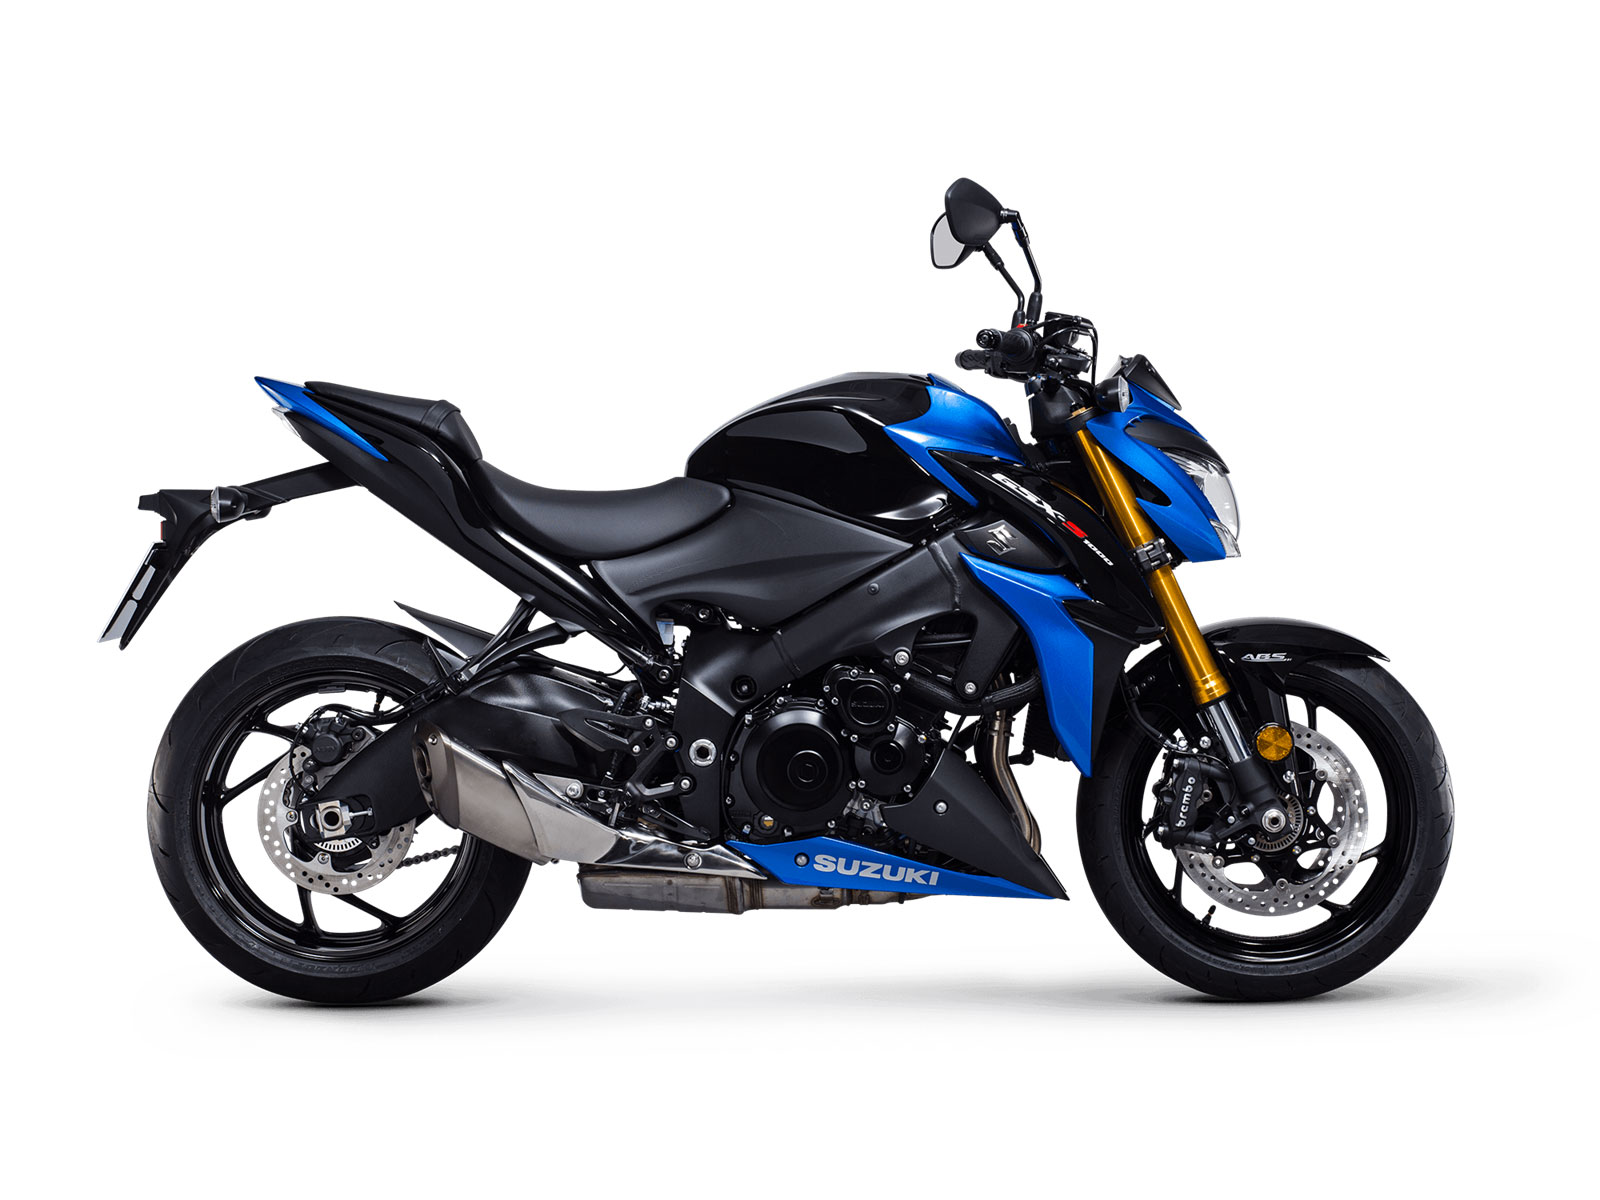 2018 suzuki gsx s1000 abs review totalmotorcycle. Black Bedroom Furniture Sets. Home Design Ideas